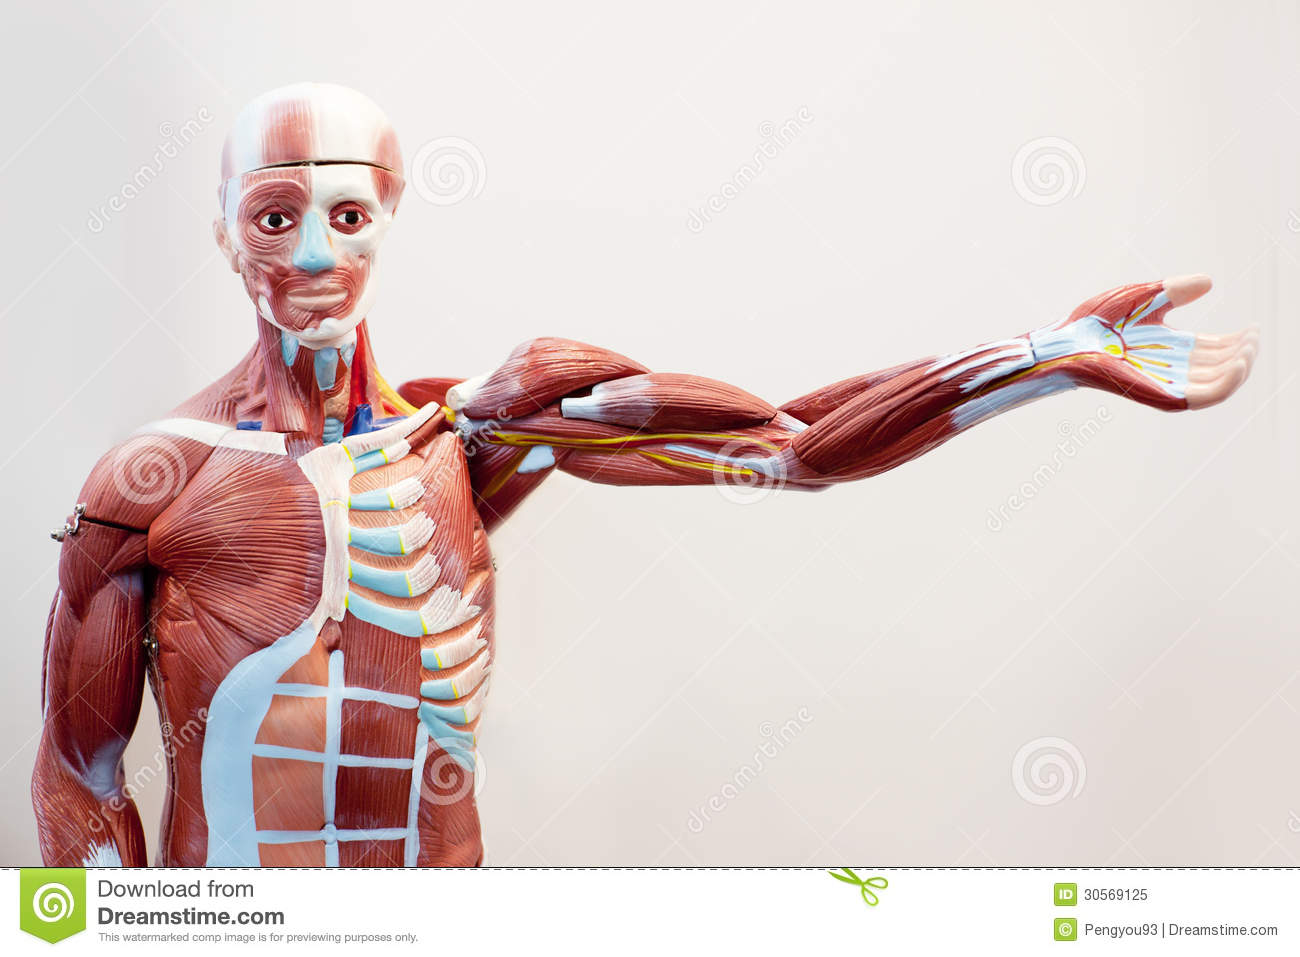 Mannequin Body Muscle Tissue Stock Image - Image of model, anatomy ...